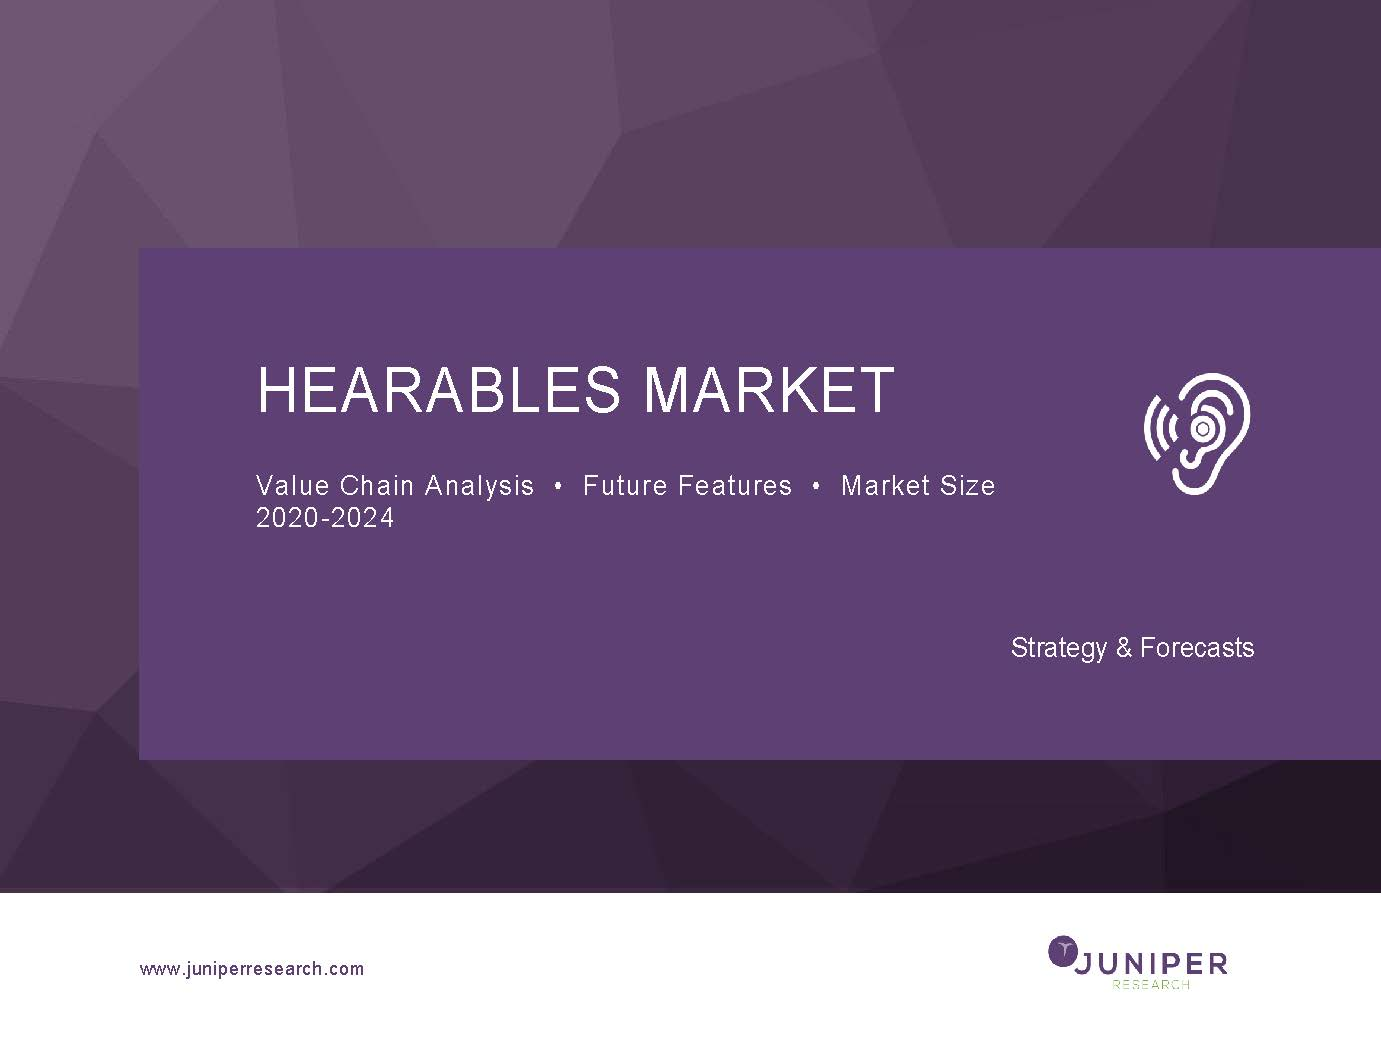 Hearables Market